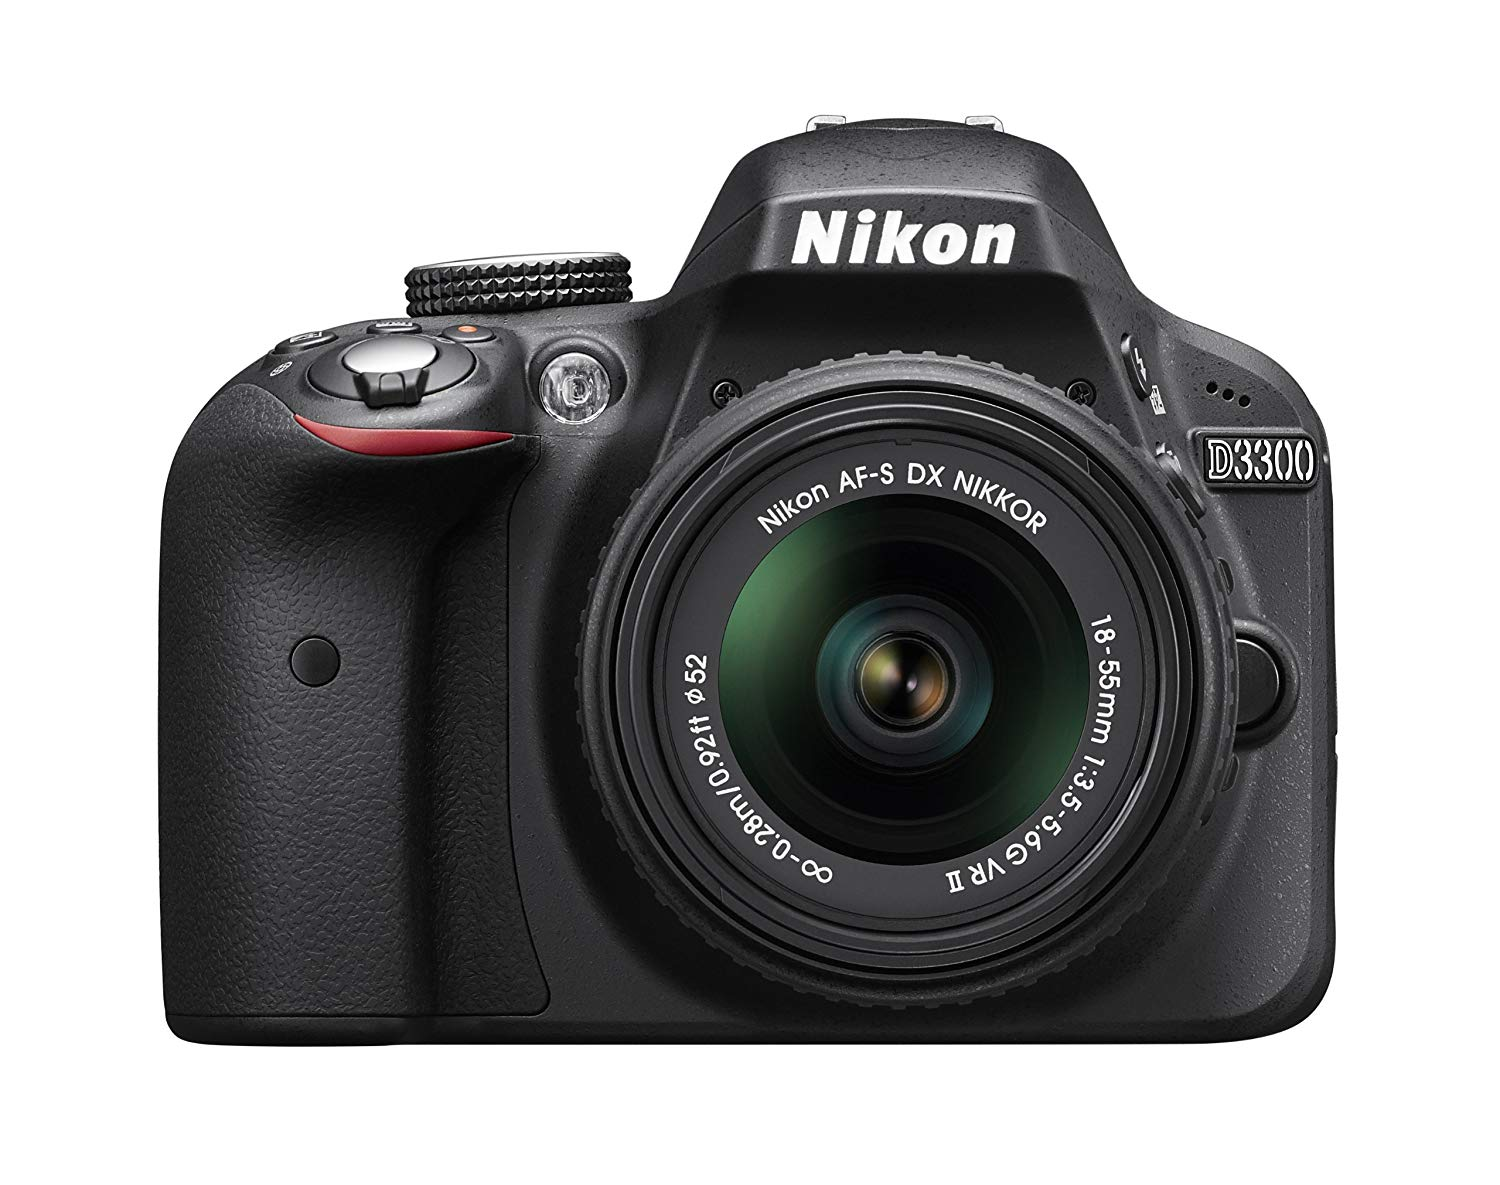 nikon d3300 connectivity image